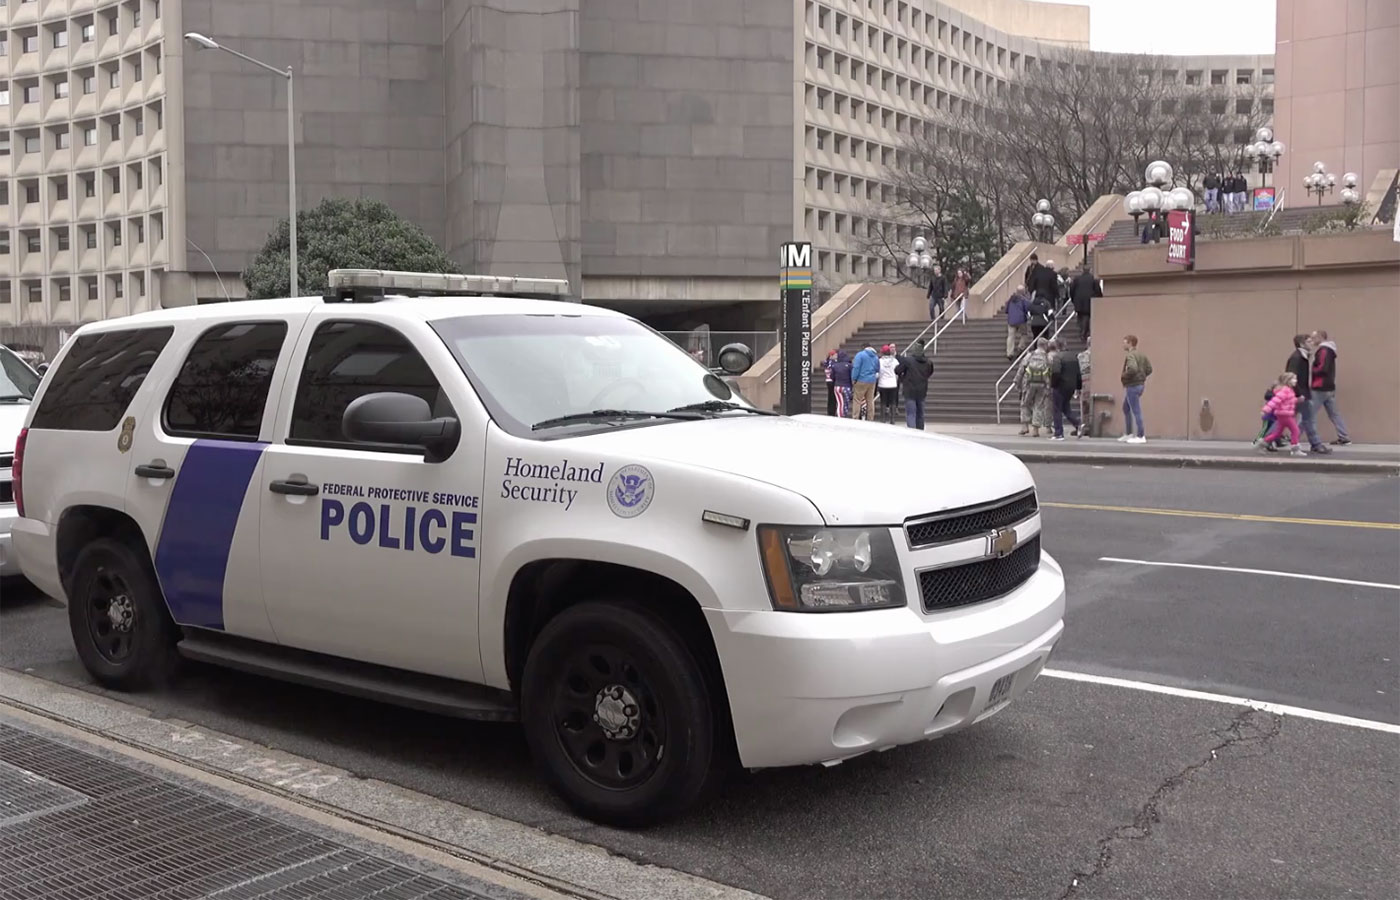 Homeland Security Vehicle